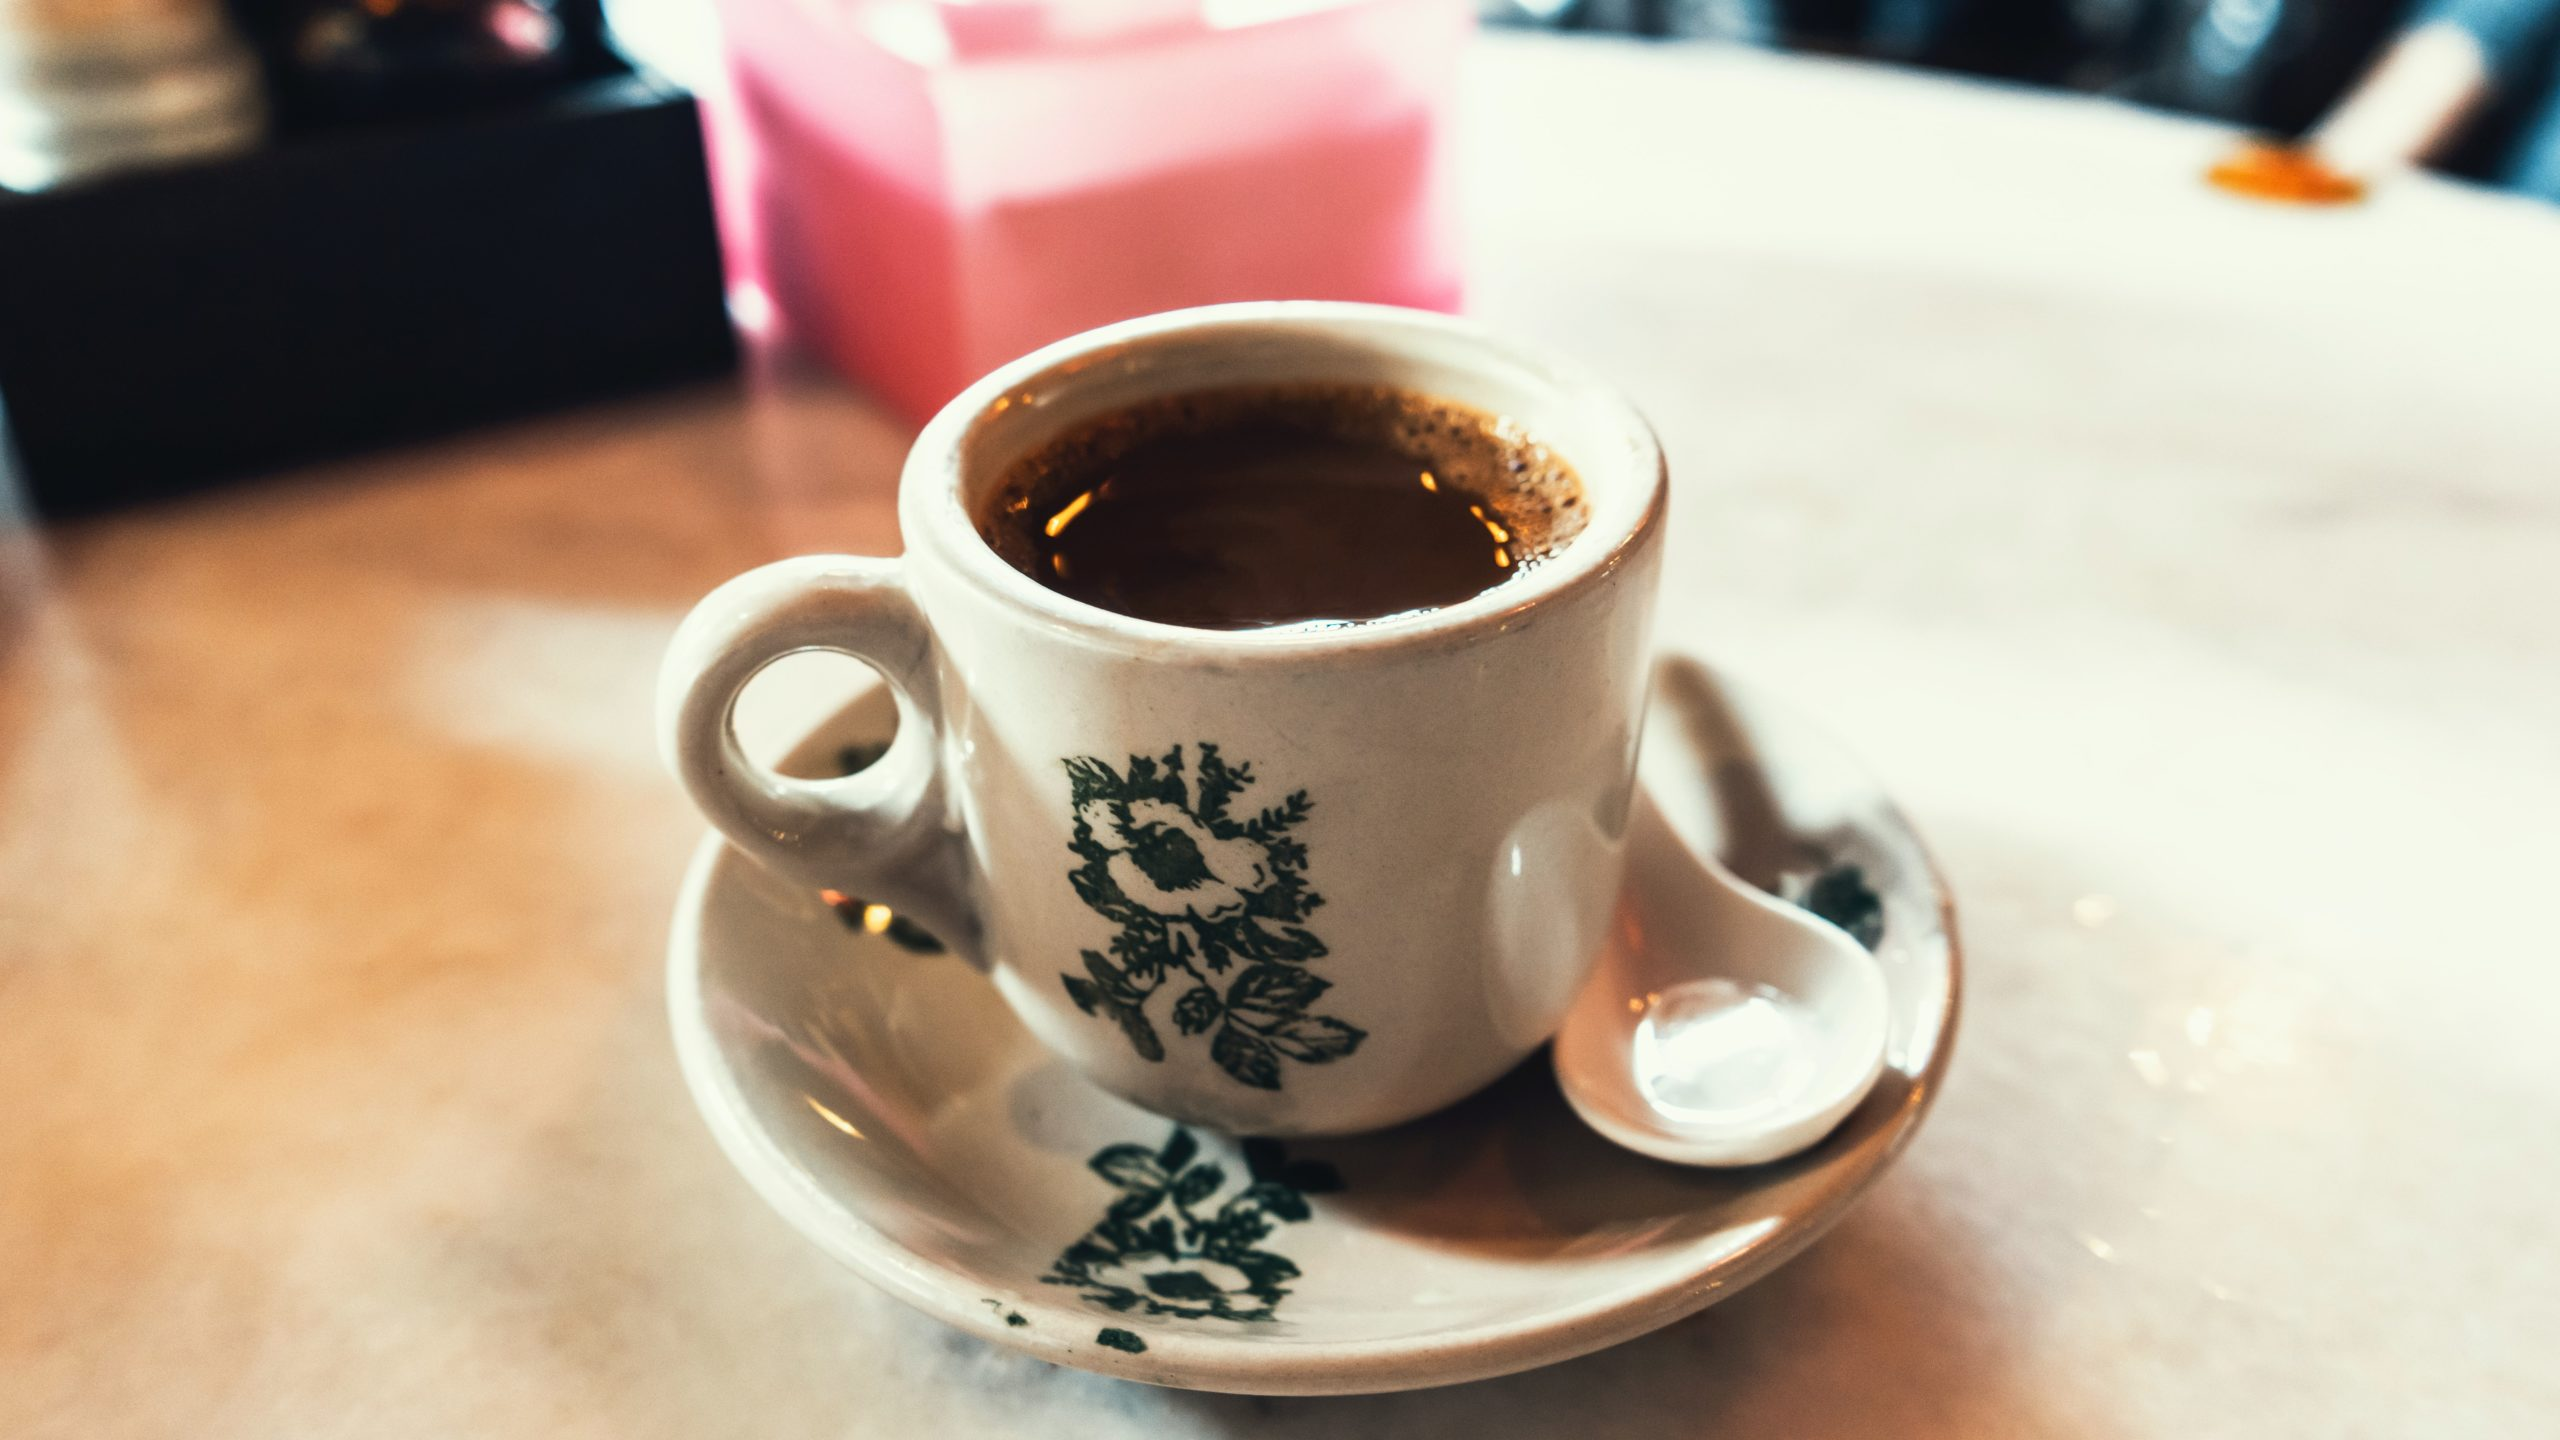 coffee served in a traditional mug